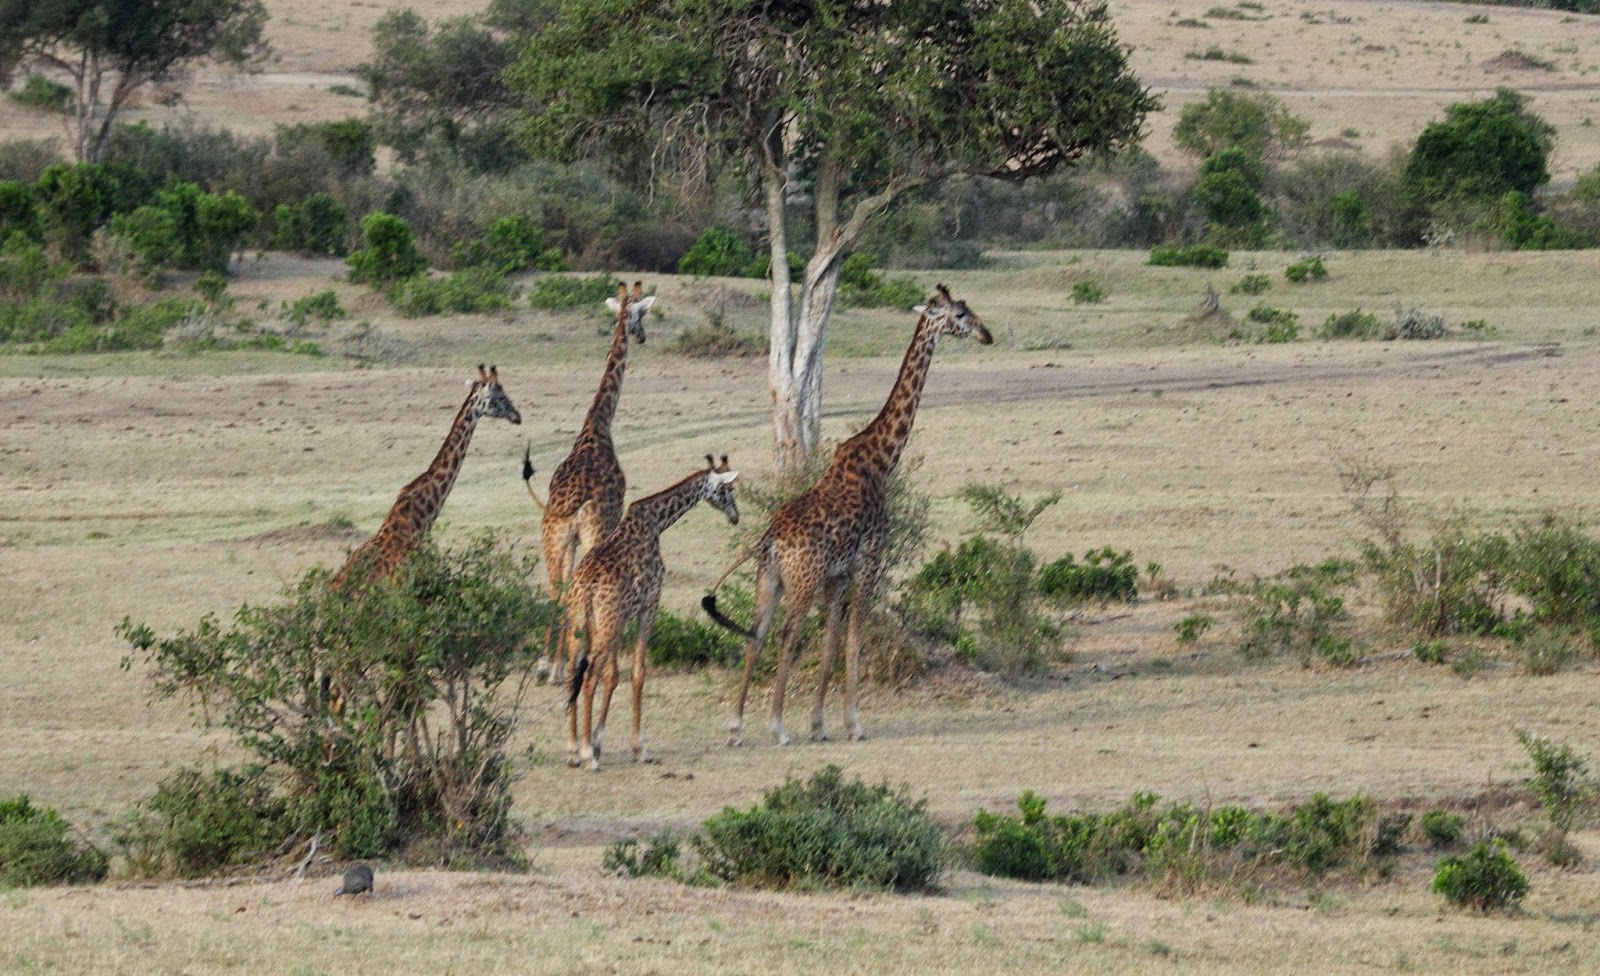 Giraffes at Masai Mara National Park